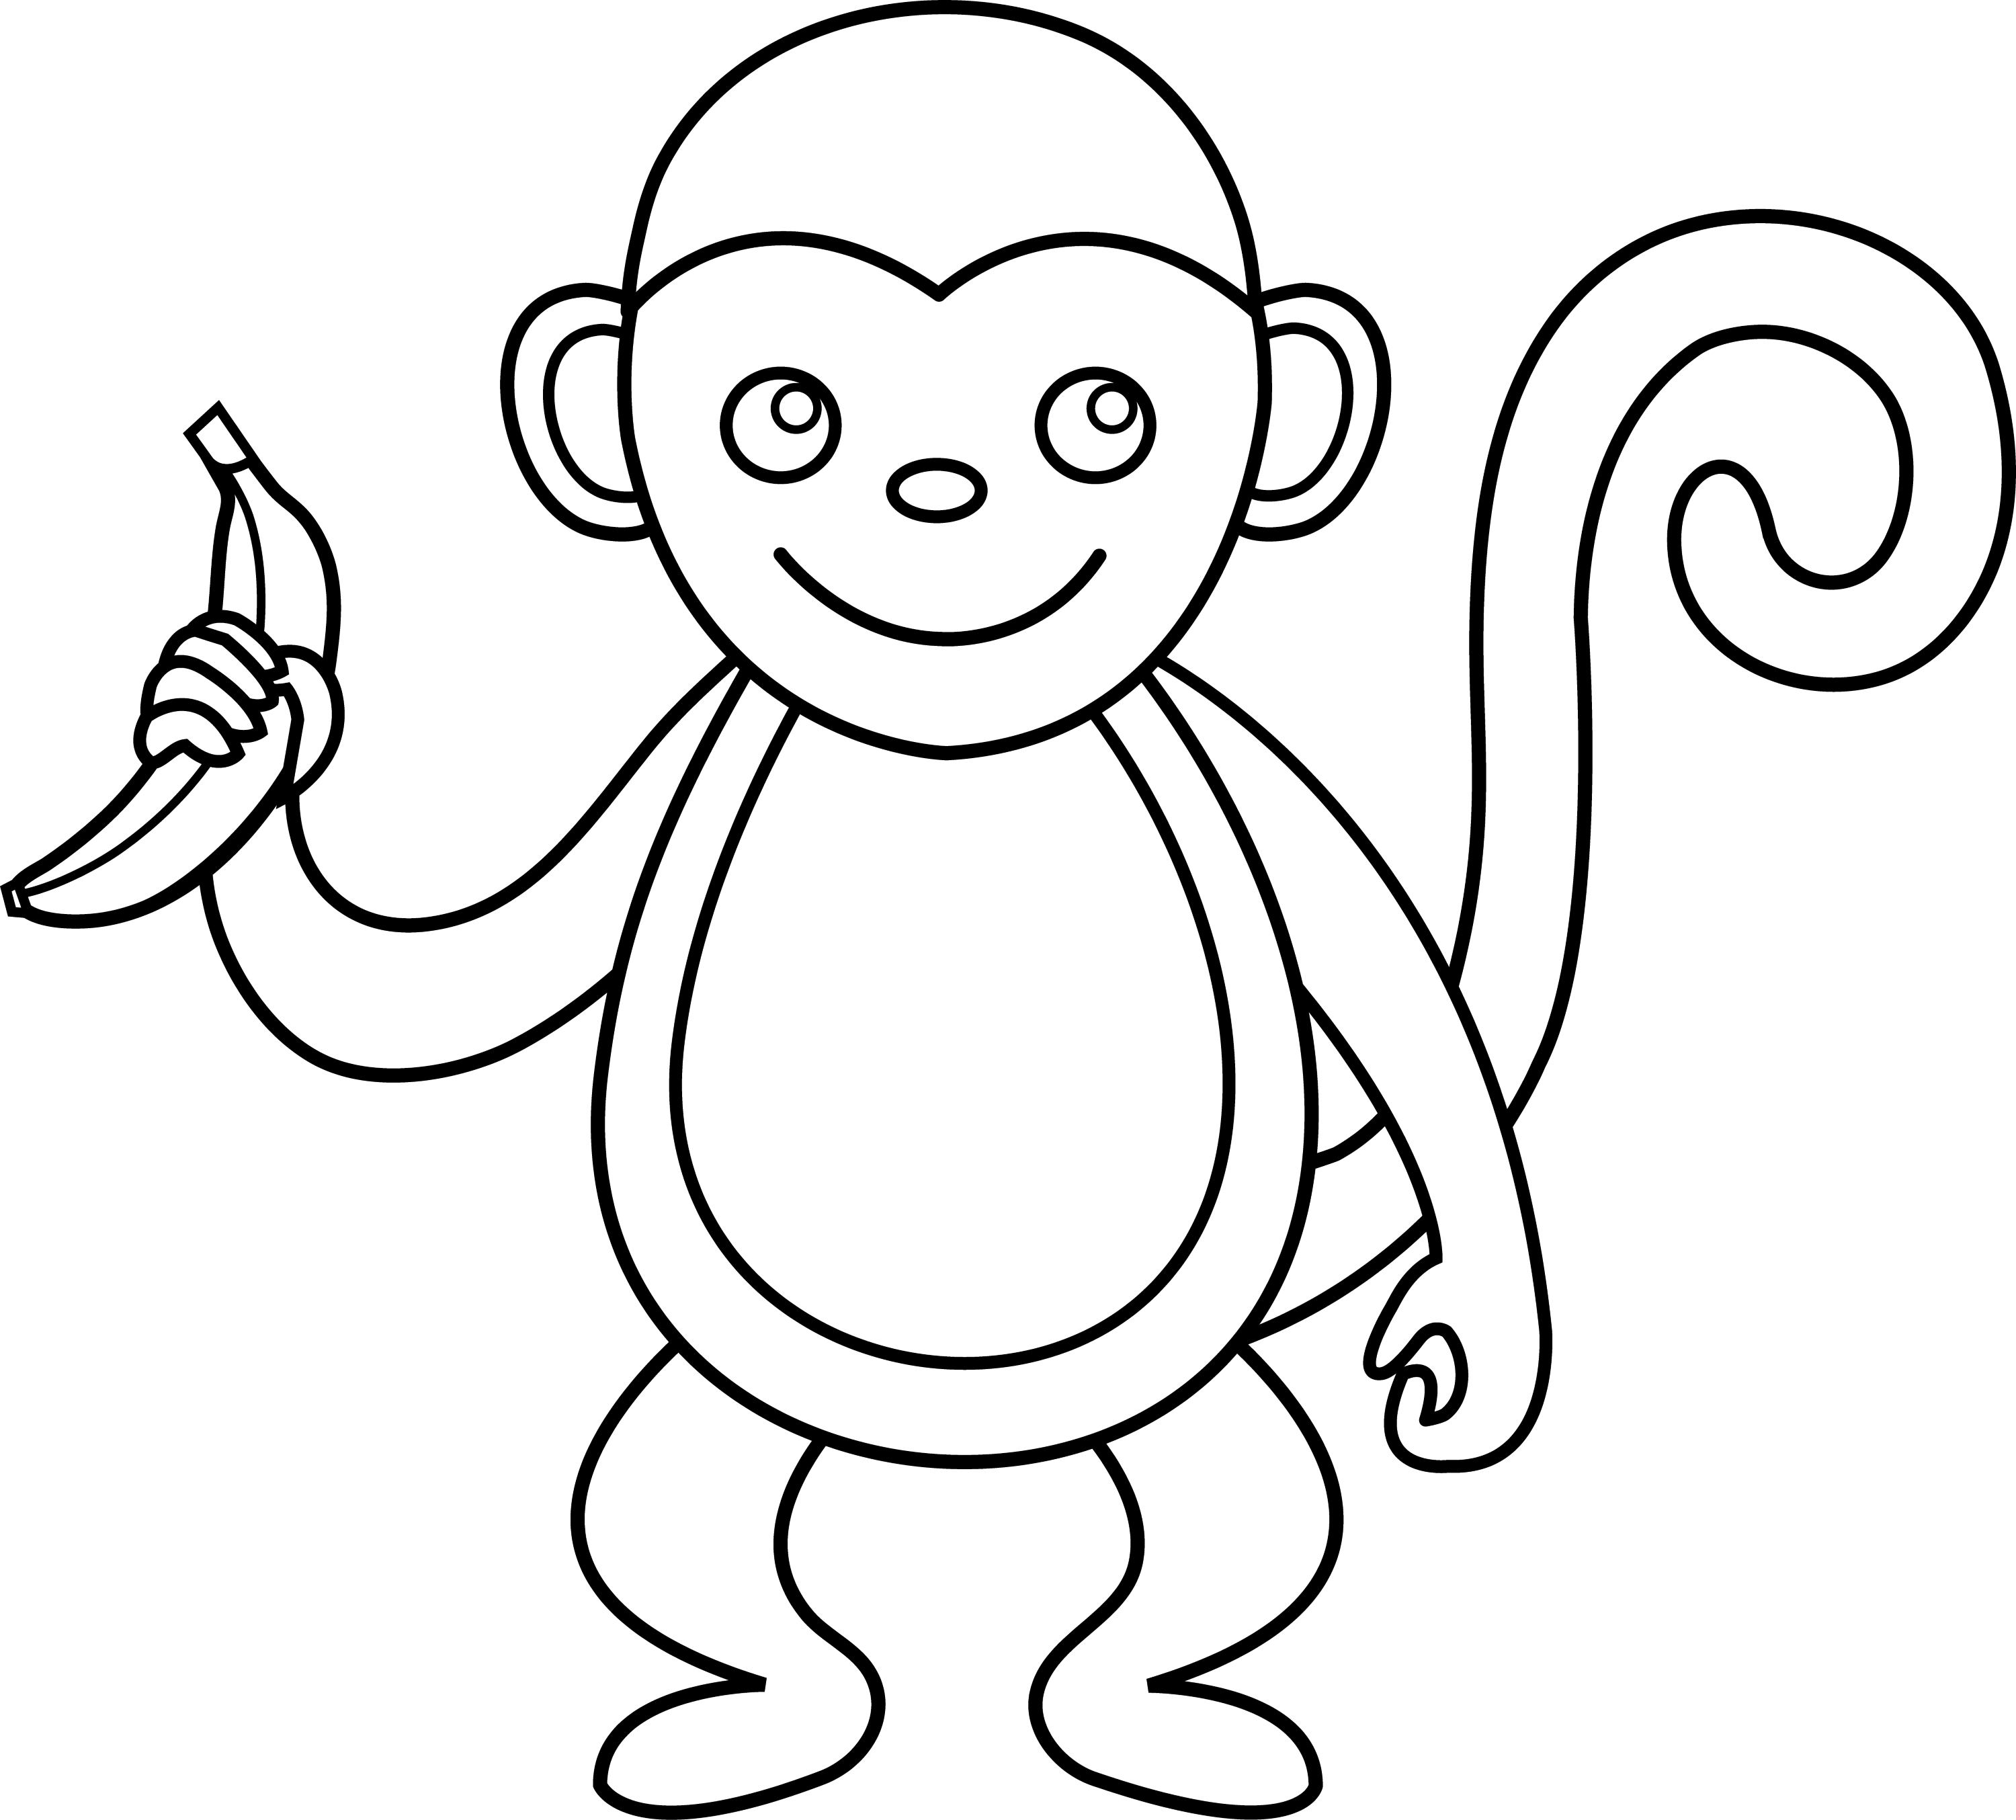 coloring monkey clipart monkey coloring pages free download on clipartmag clipart coloring monkey